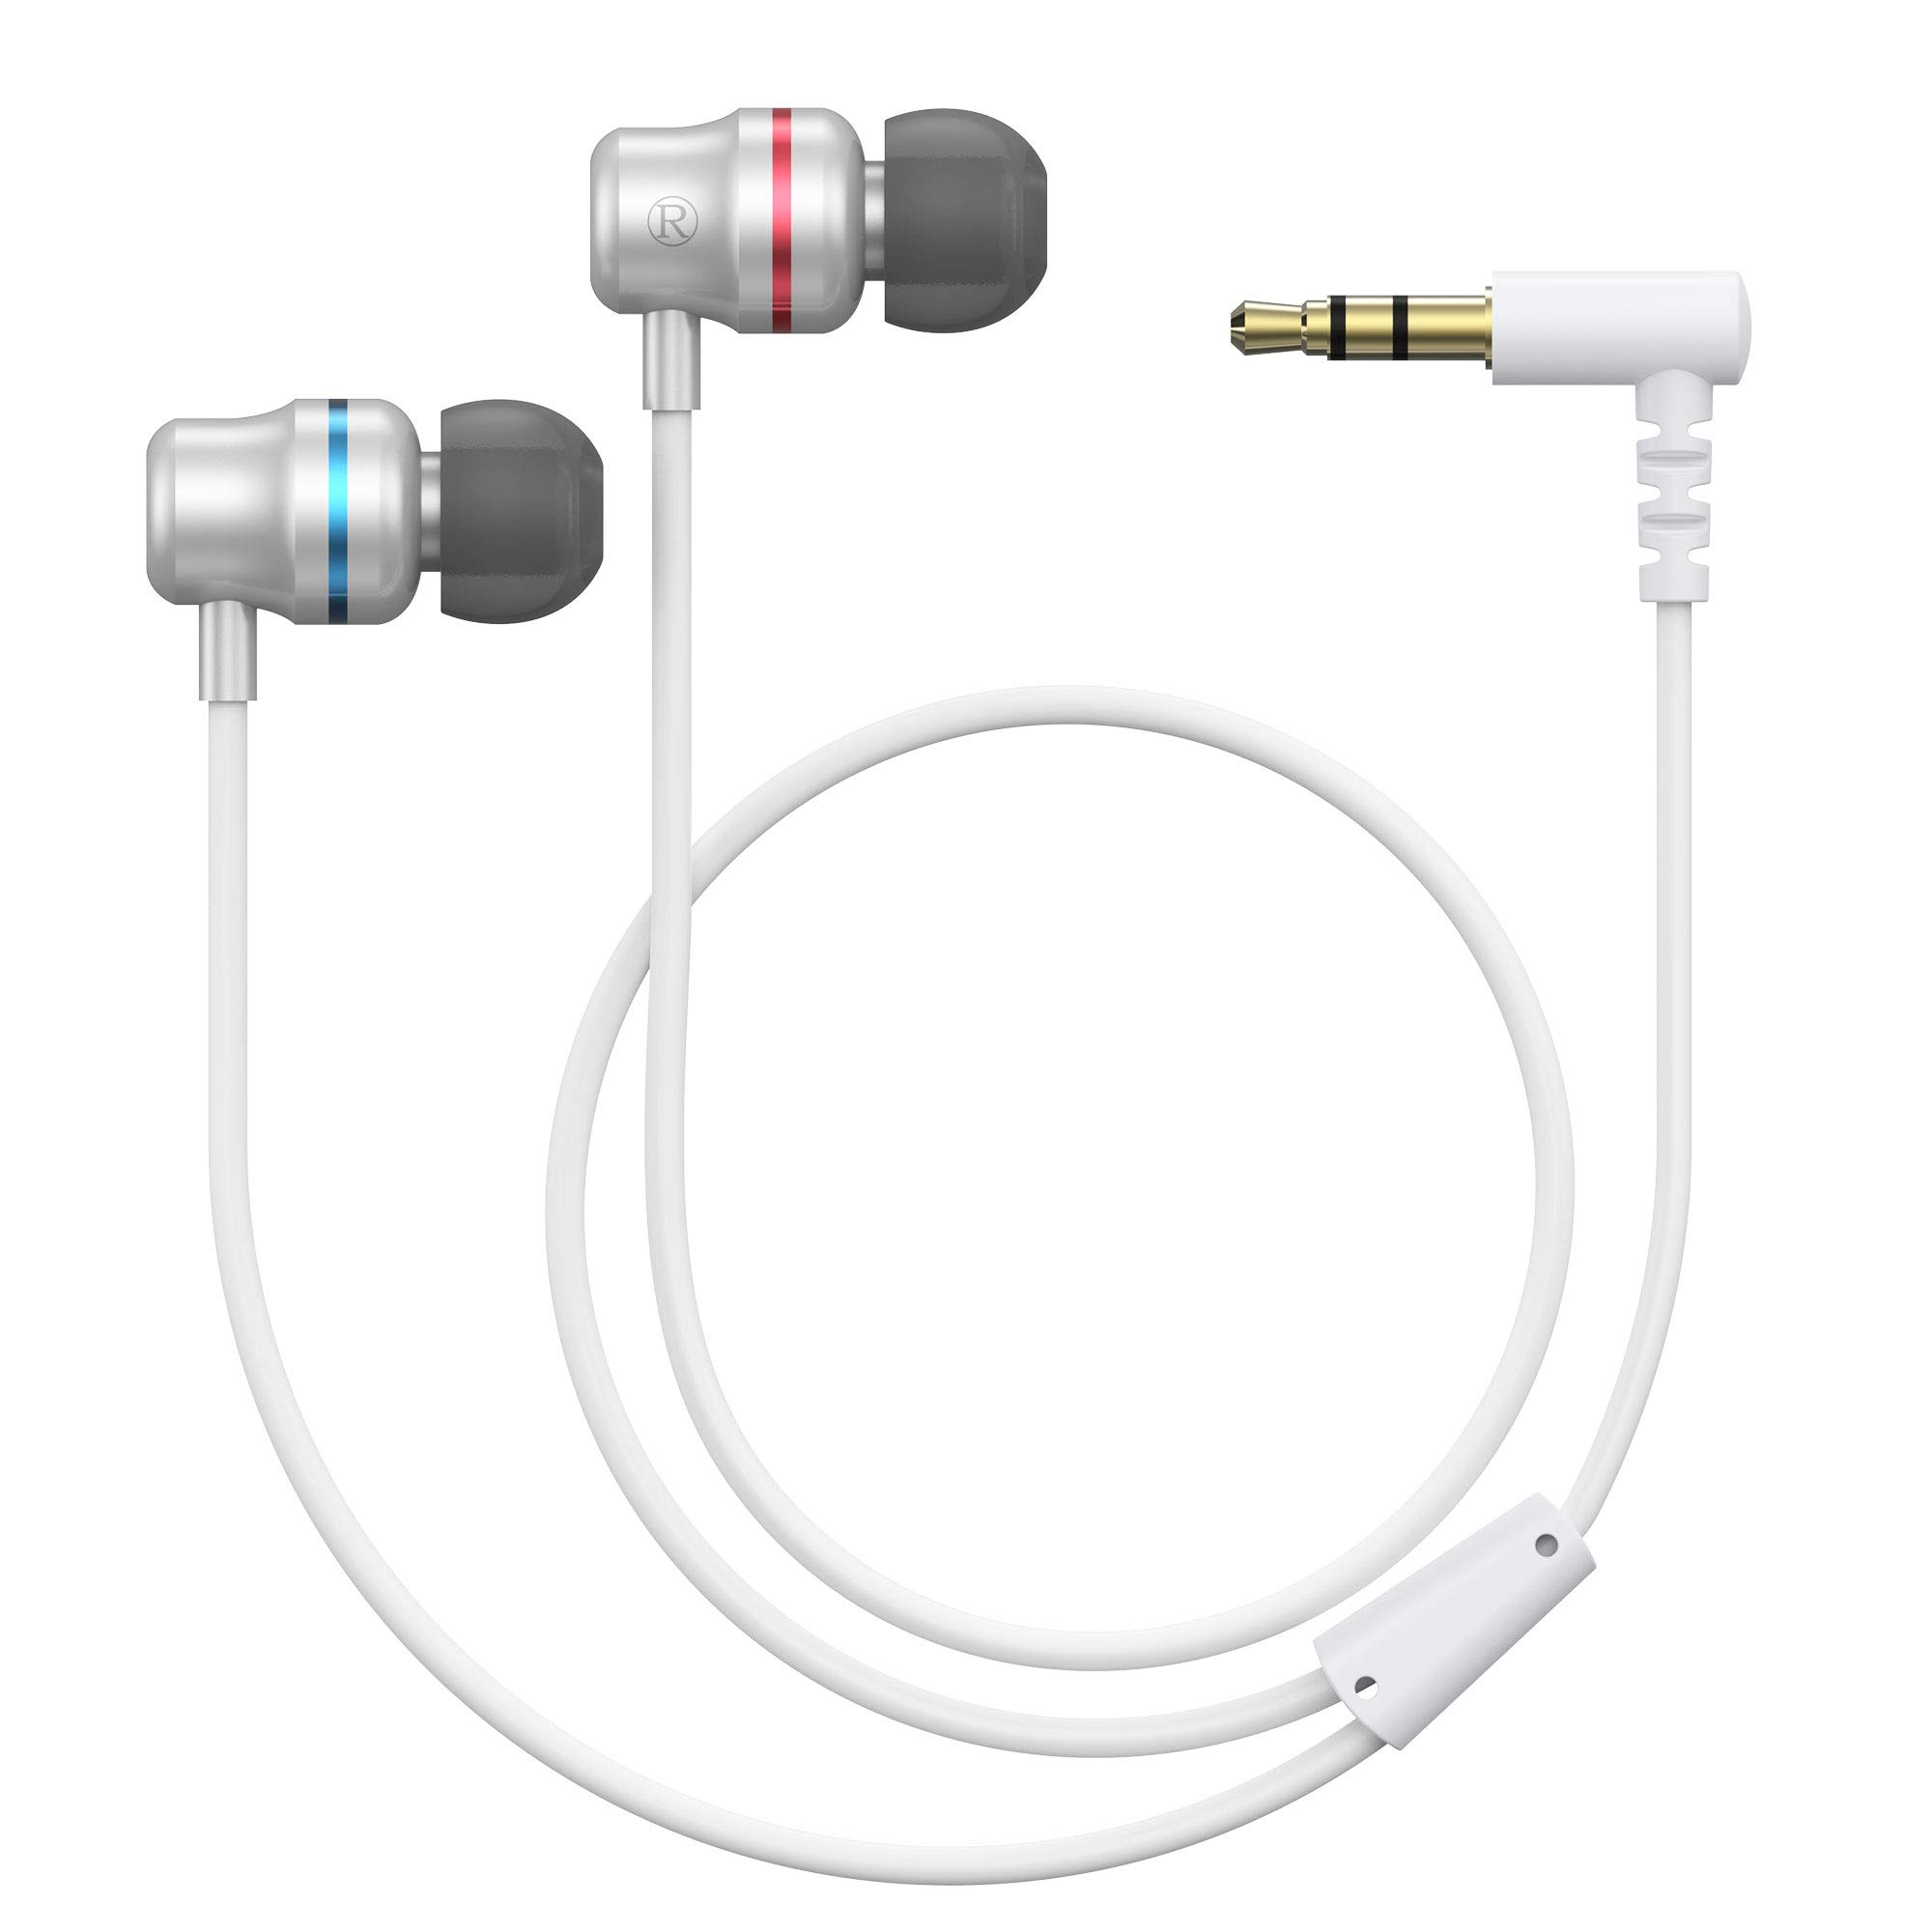 KIWI design Headphones for Oculus Quest 2 / Rift S VR Headset Noise-Isolating in-Ear Earphones with 3D 360 Degree Sound and Custom Silicone Earbuds Caps (White)